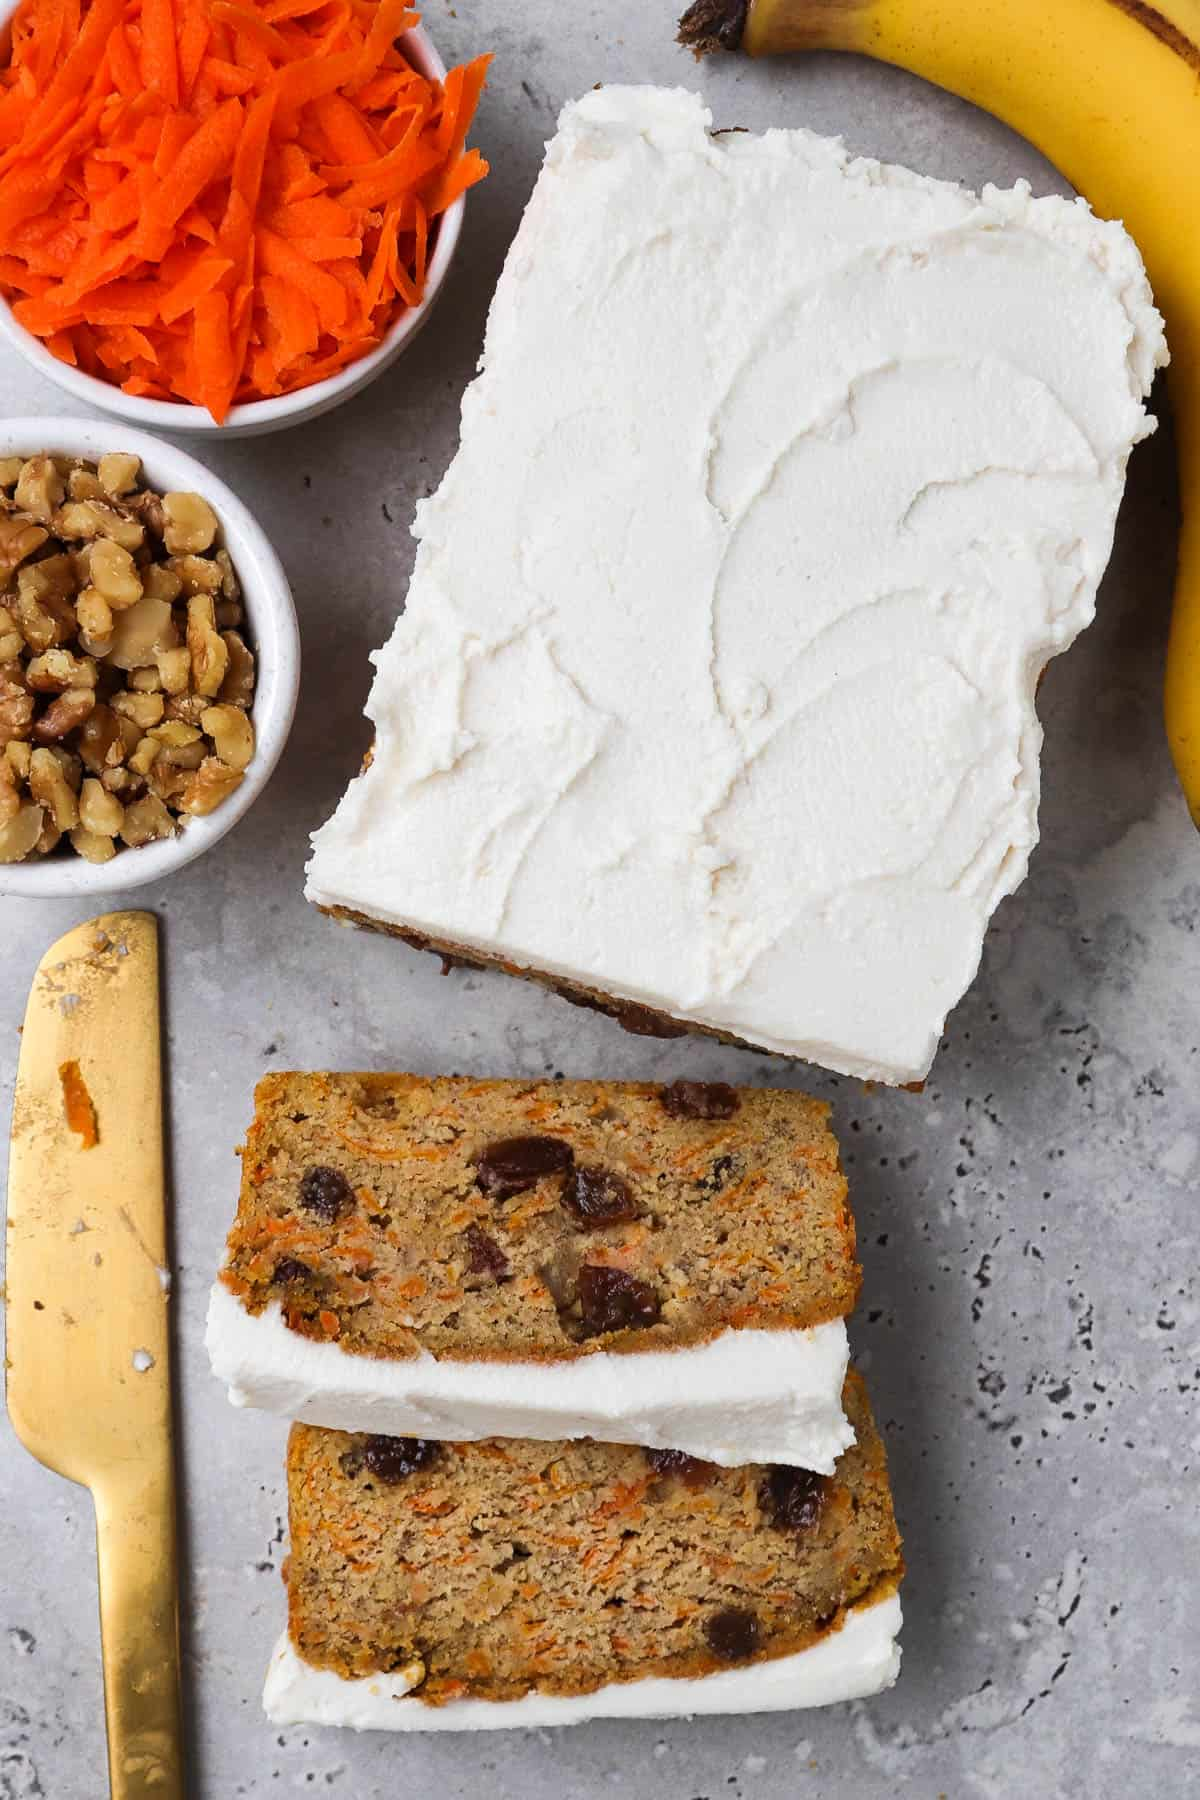 Bread topped with frosting cut into there slices at front. Small dish of grated carrot, walnuts, banana and gold knife on the side for garnish.